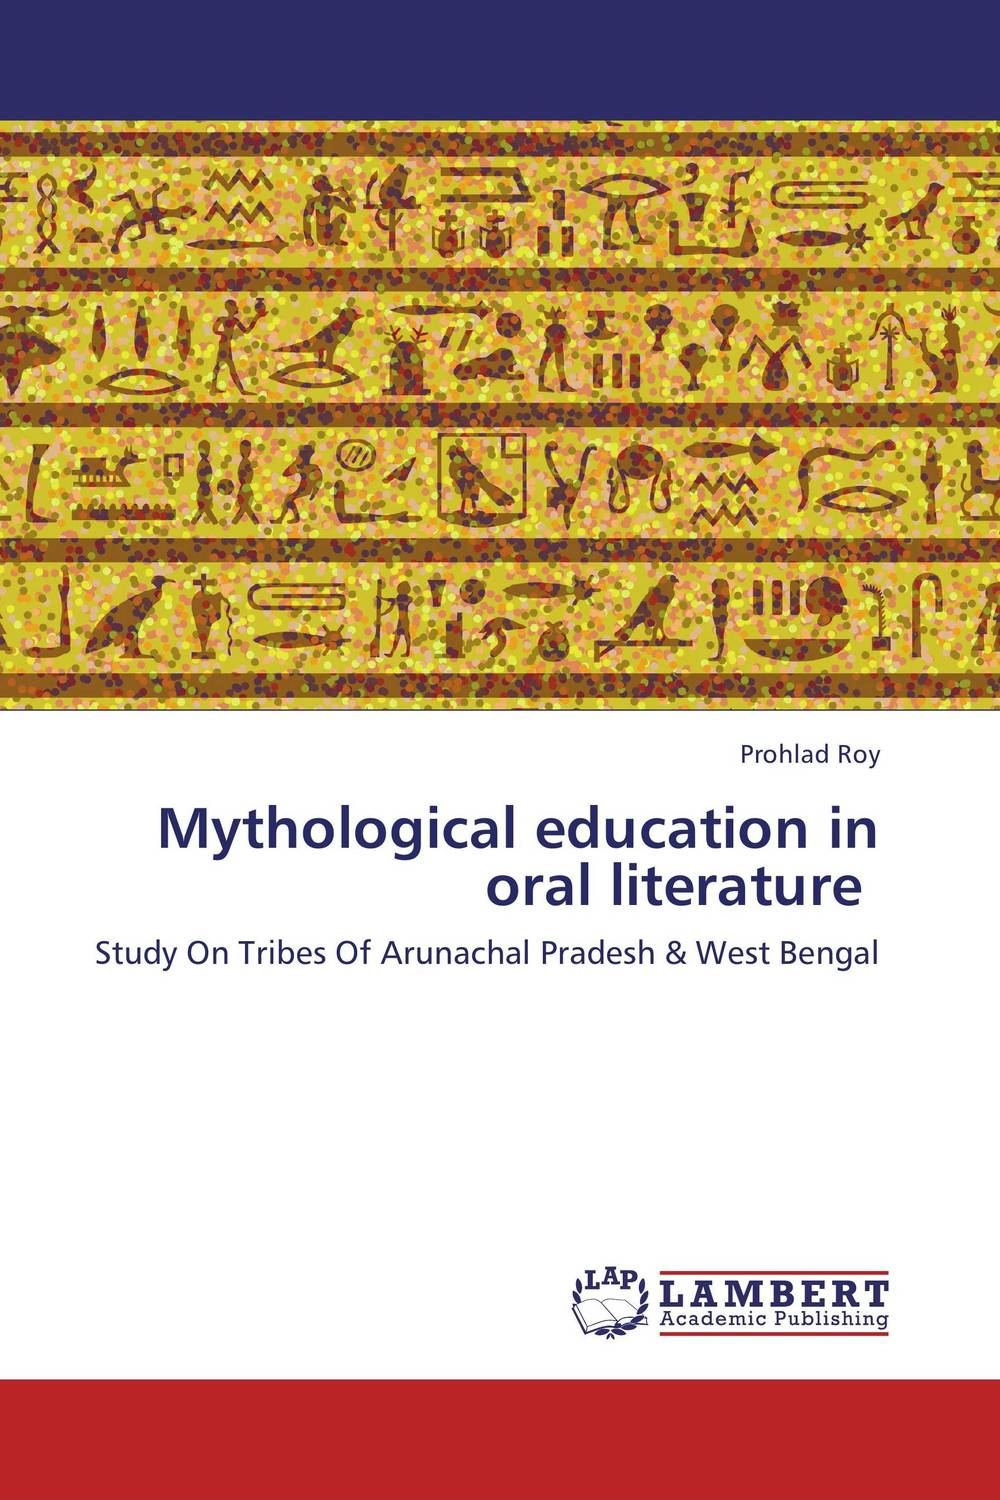 Mythological education in oral literature scientific and mythological ways of knowing in anthropology